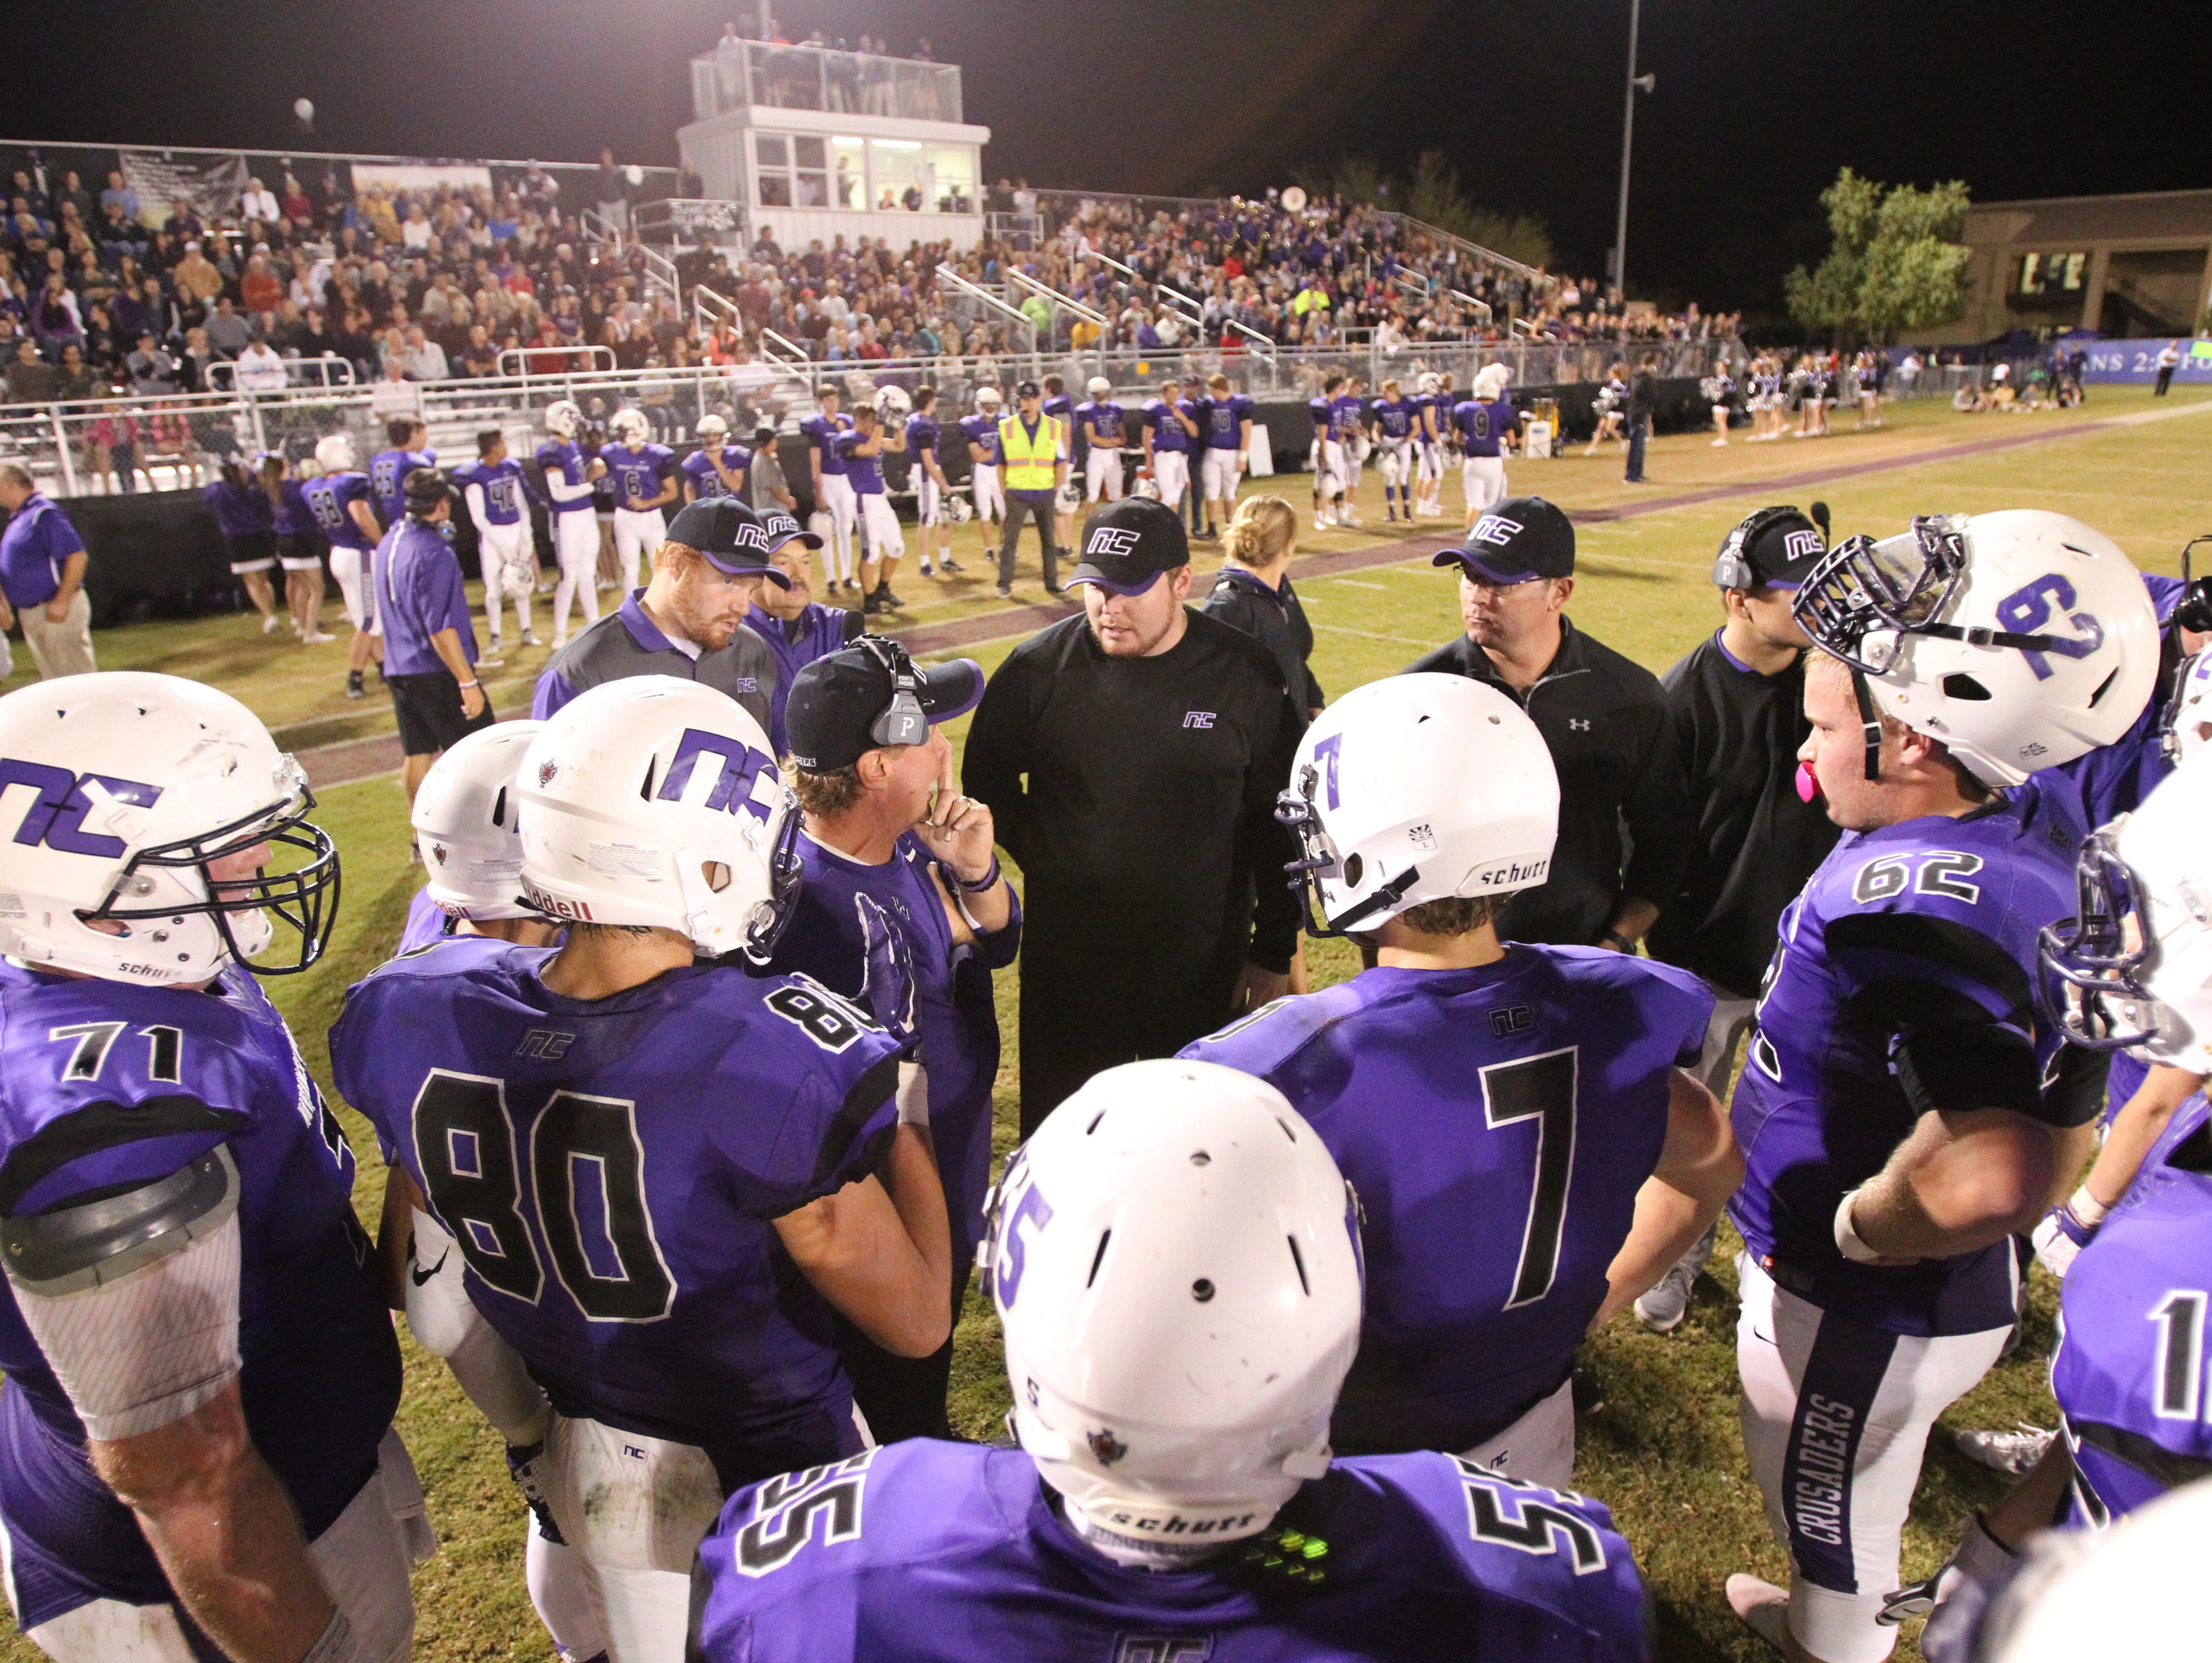 Coach David Inness leads a team timeout in a football game at Northwest Christian School in Phoenix, Arizona on October 30, 2015.